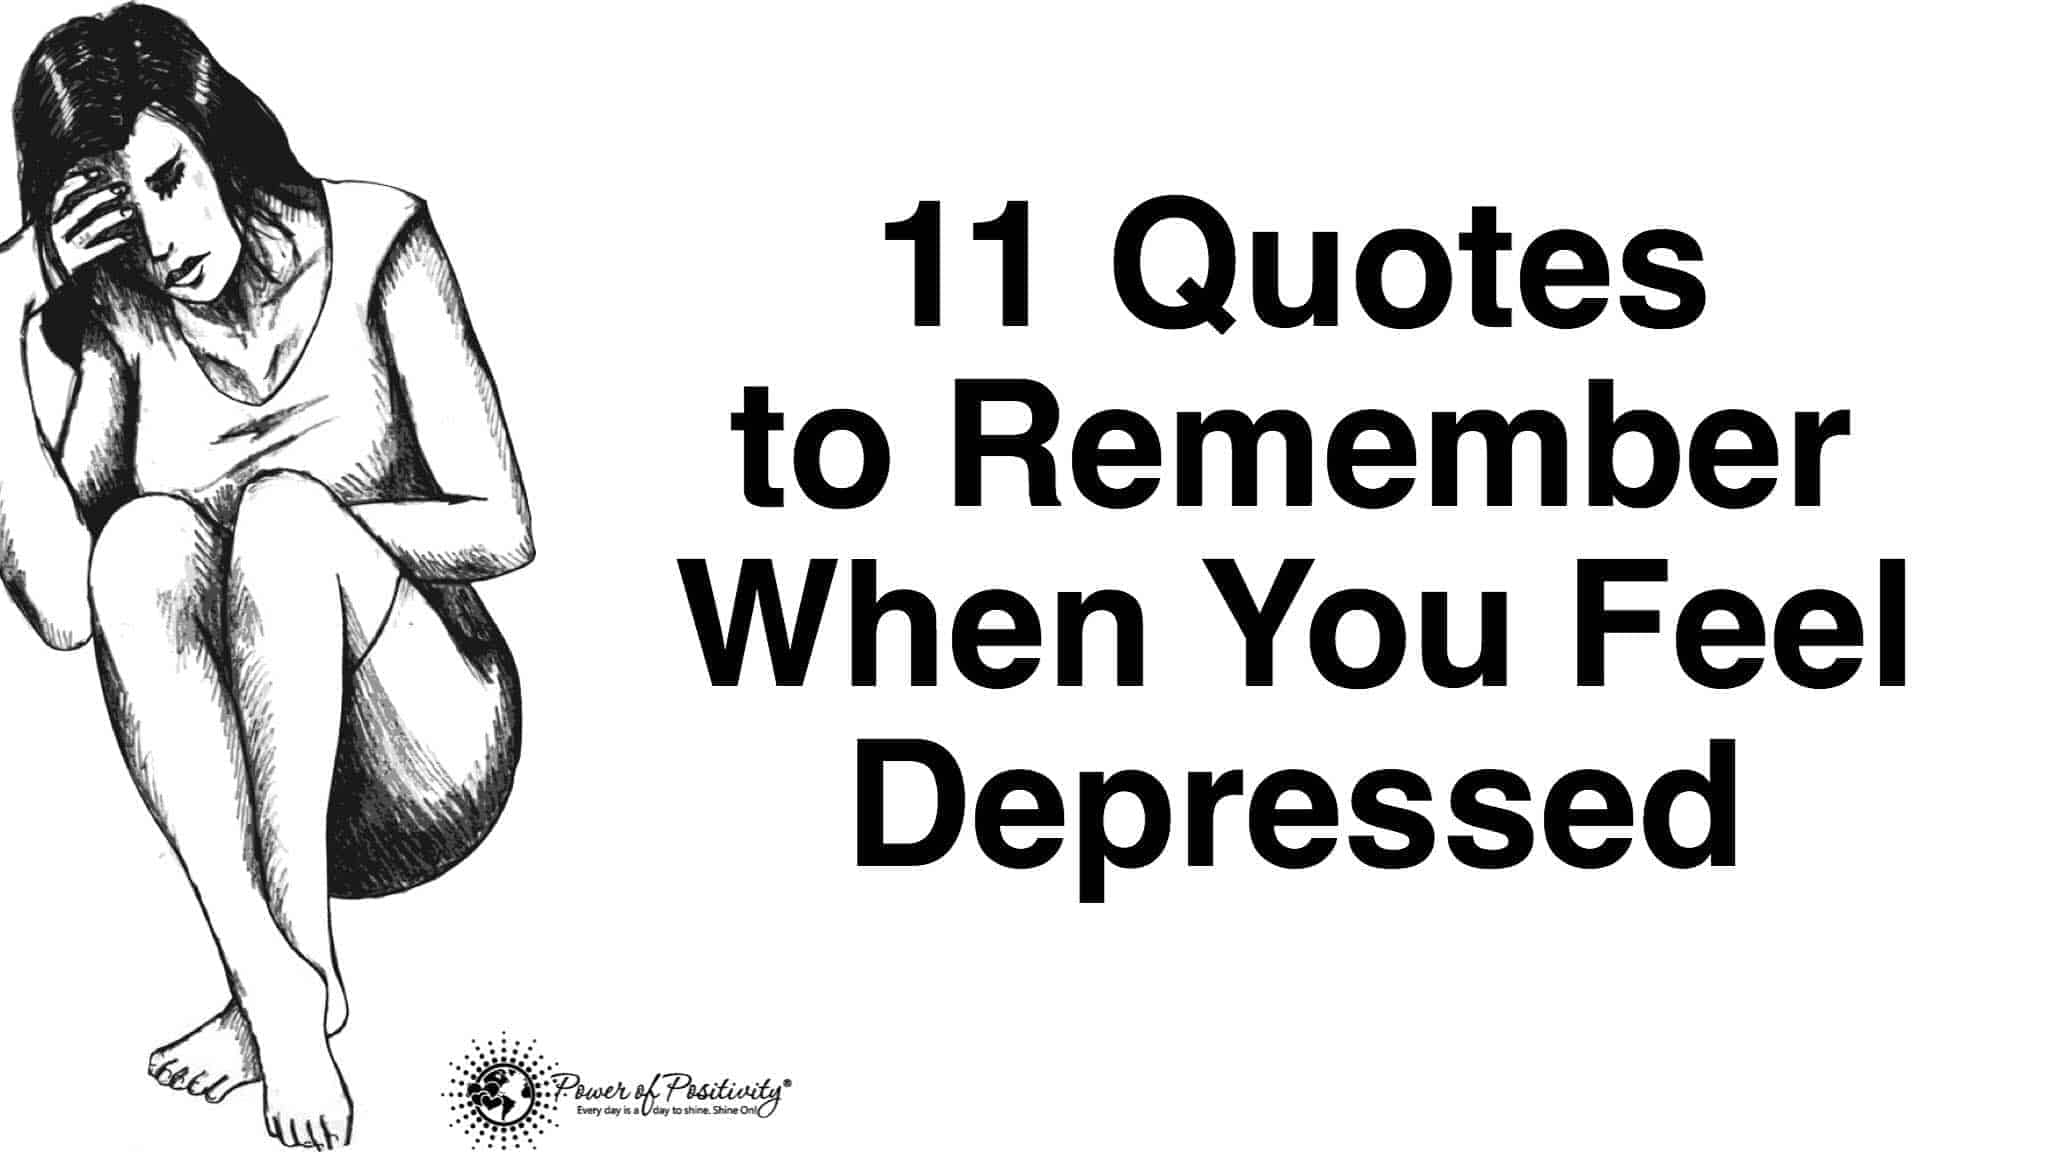 Inspirational Quotes For Depression 11 Quotes To Remember When You Feel Depressed